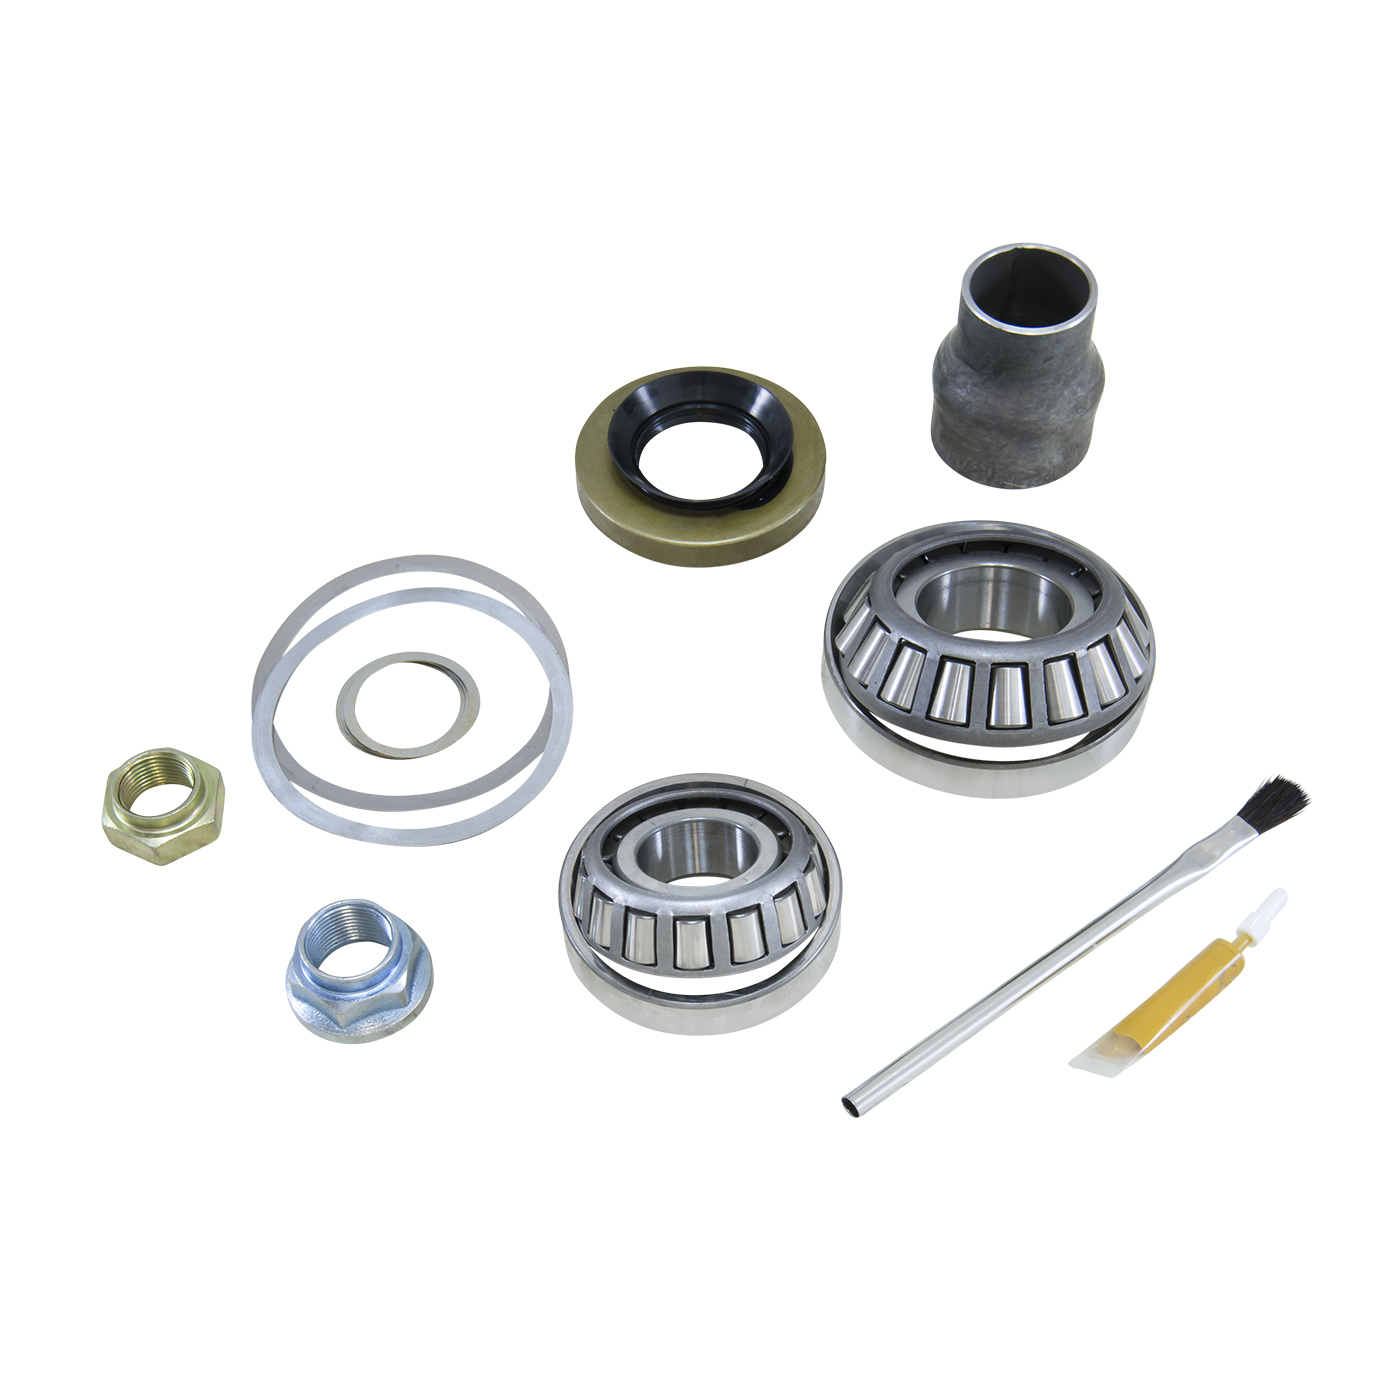 PK TLC - Yukon Pinion install kit for Toyota Landcruiser differential